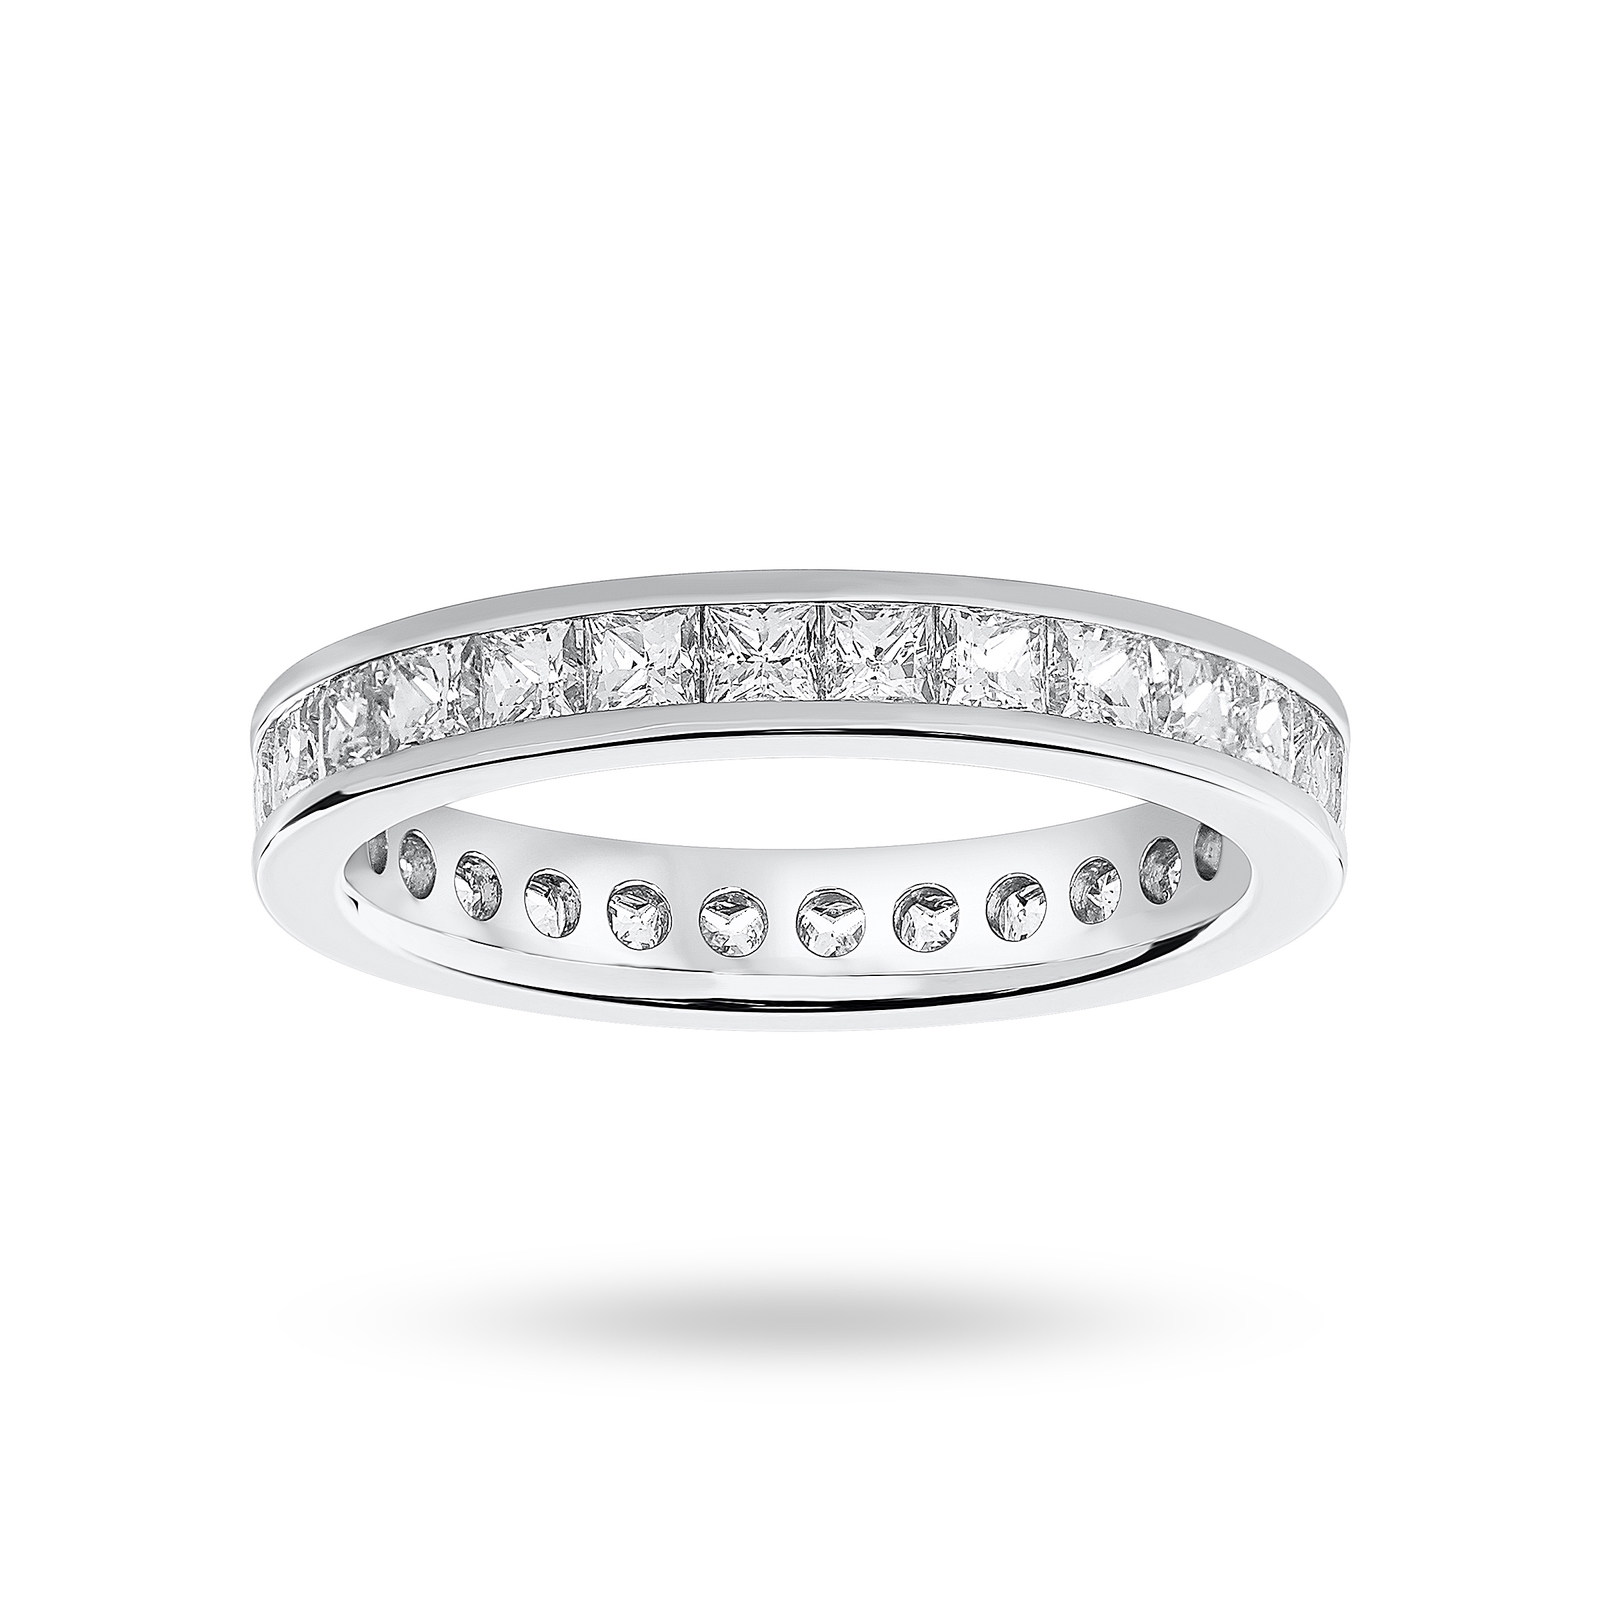 Platinum 2.00 Carat Princess Cut Channel Set Full Eternity Ring